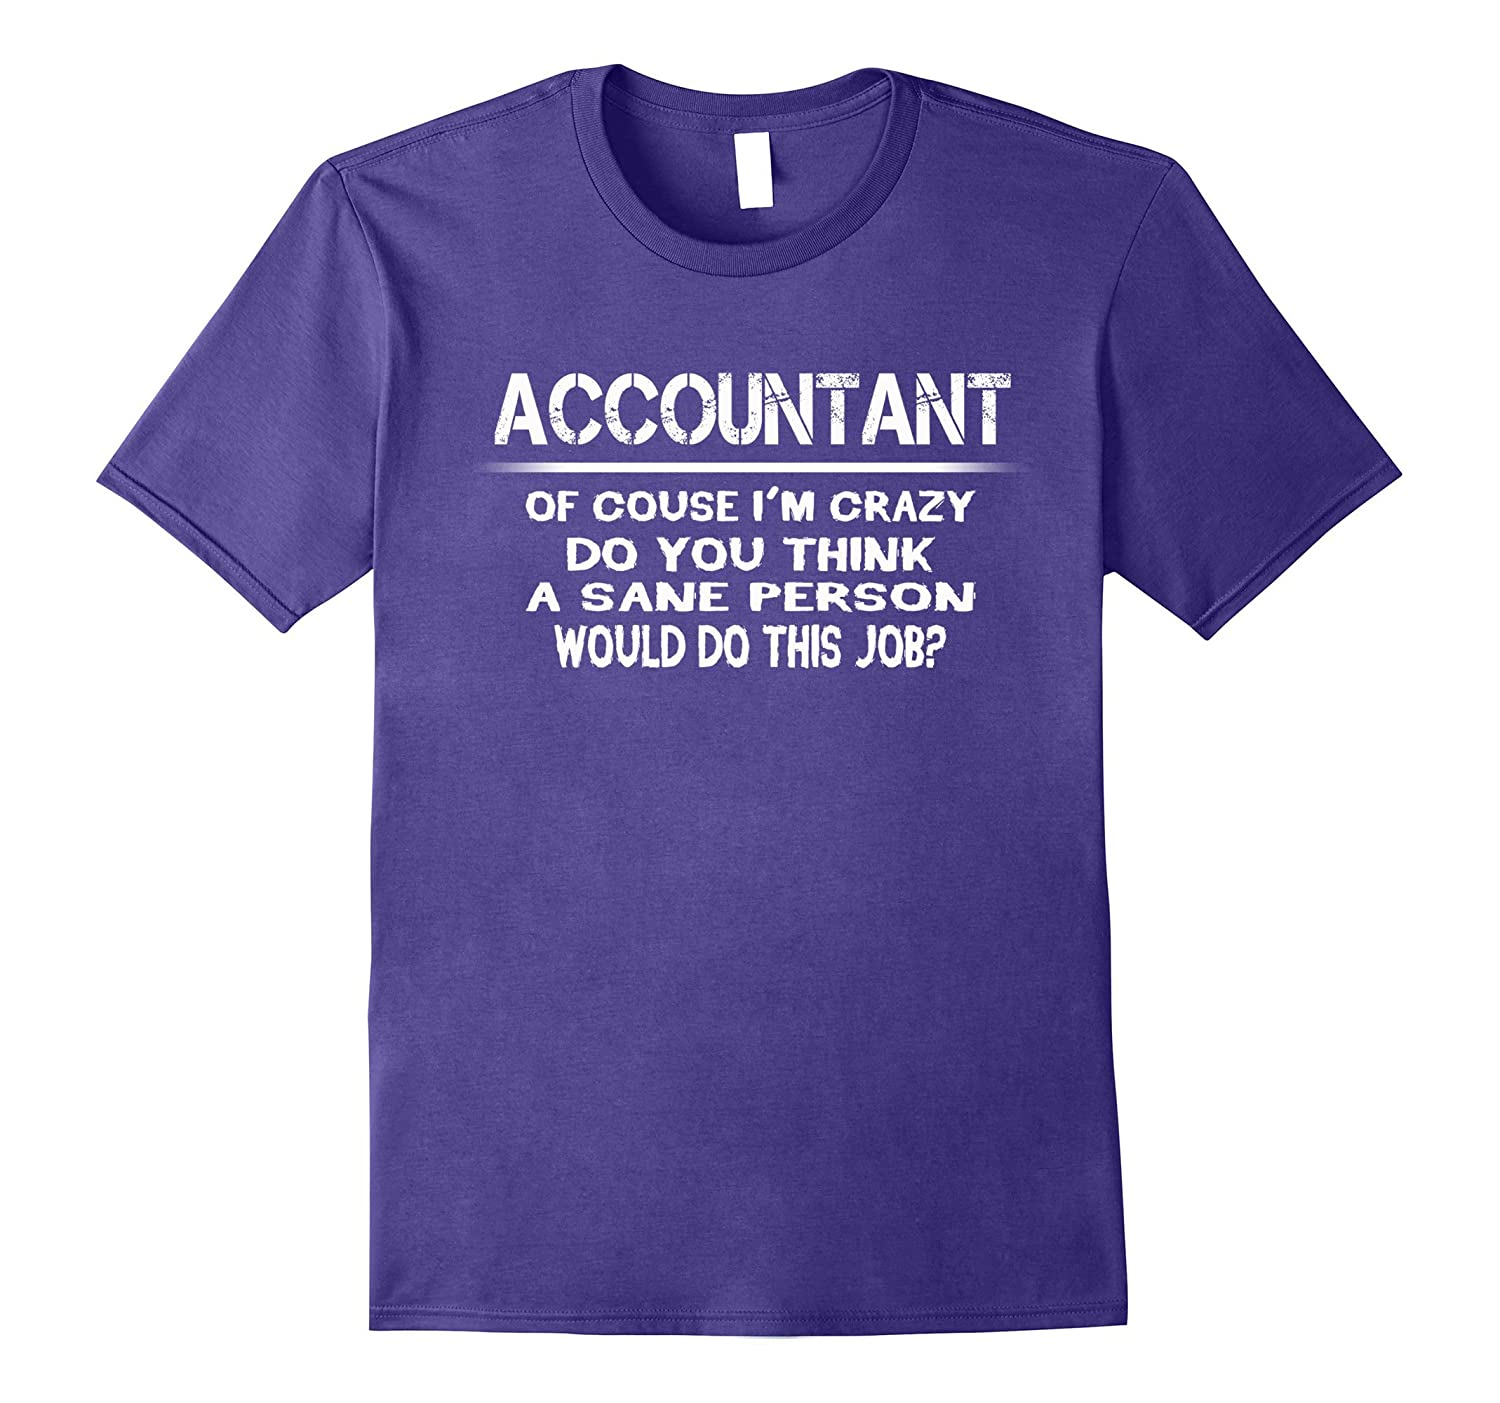 Accountant im crazy the sane people would do this job-TJ